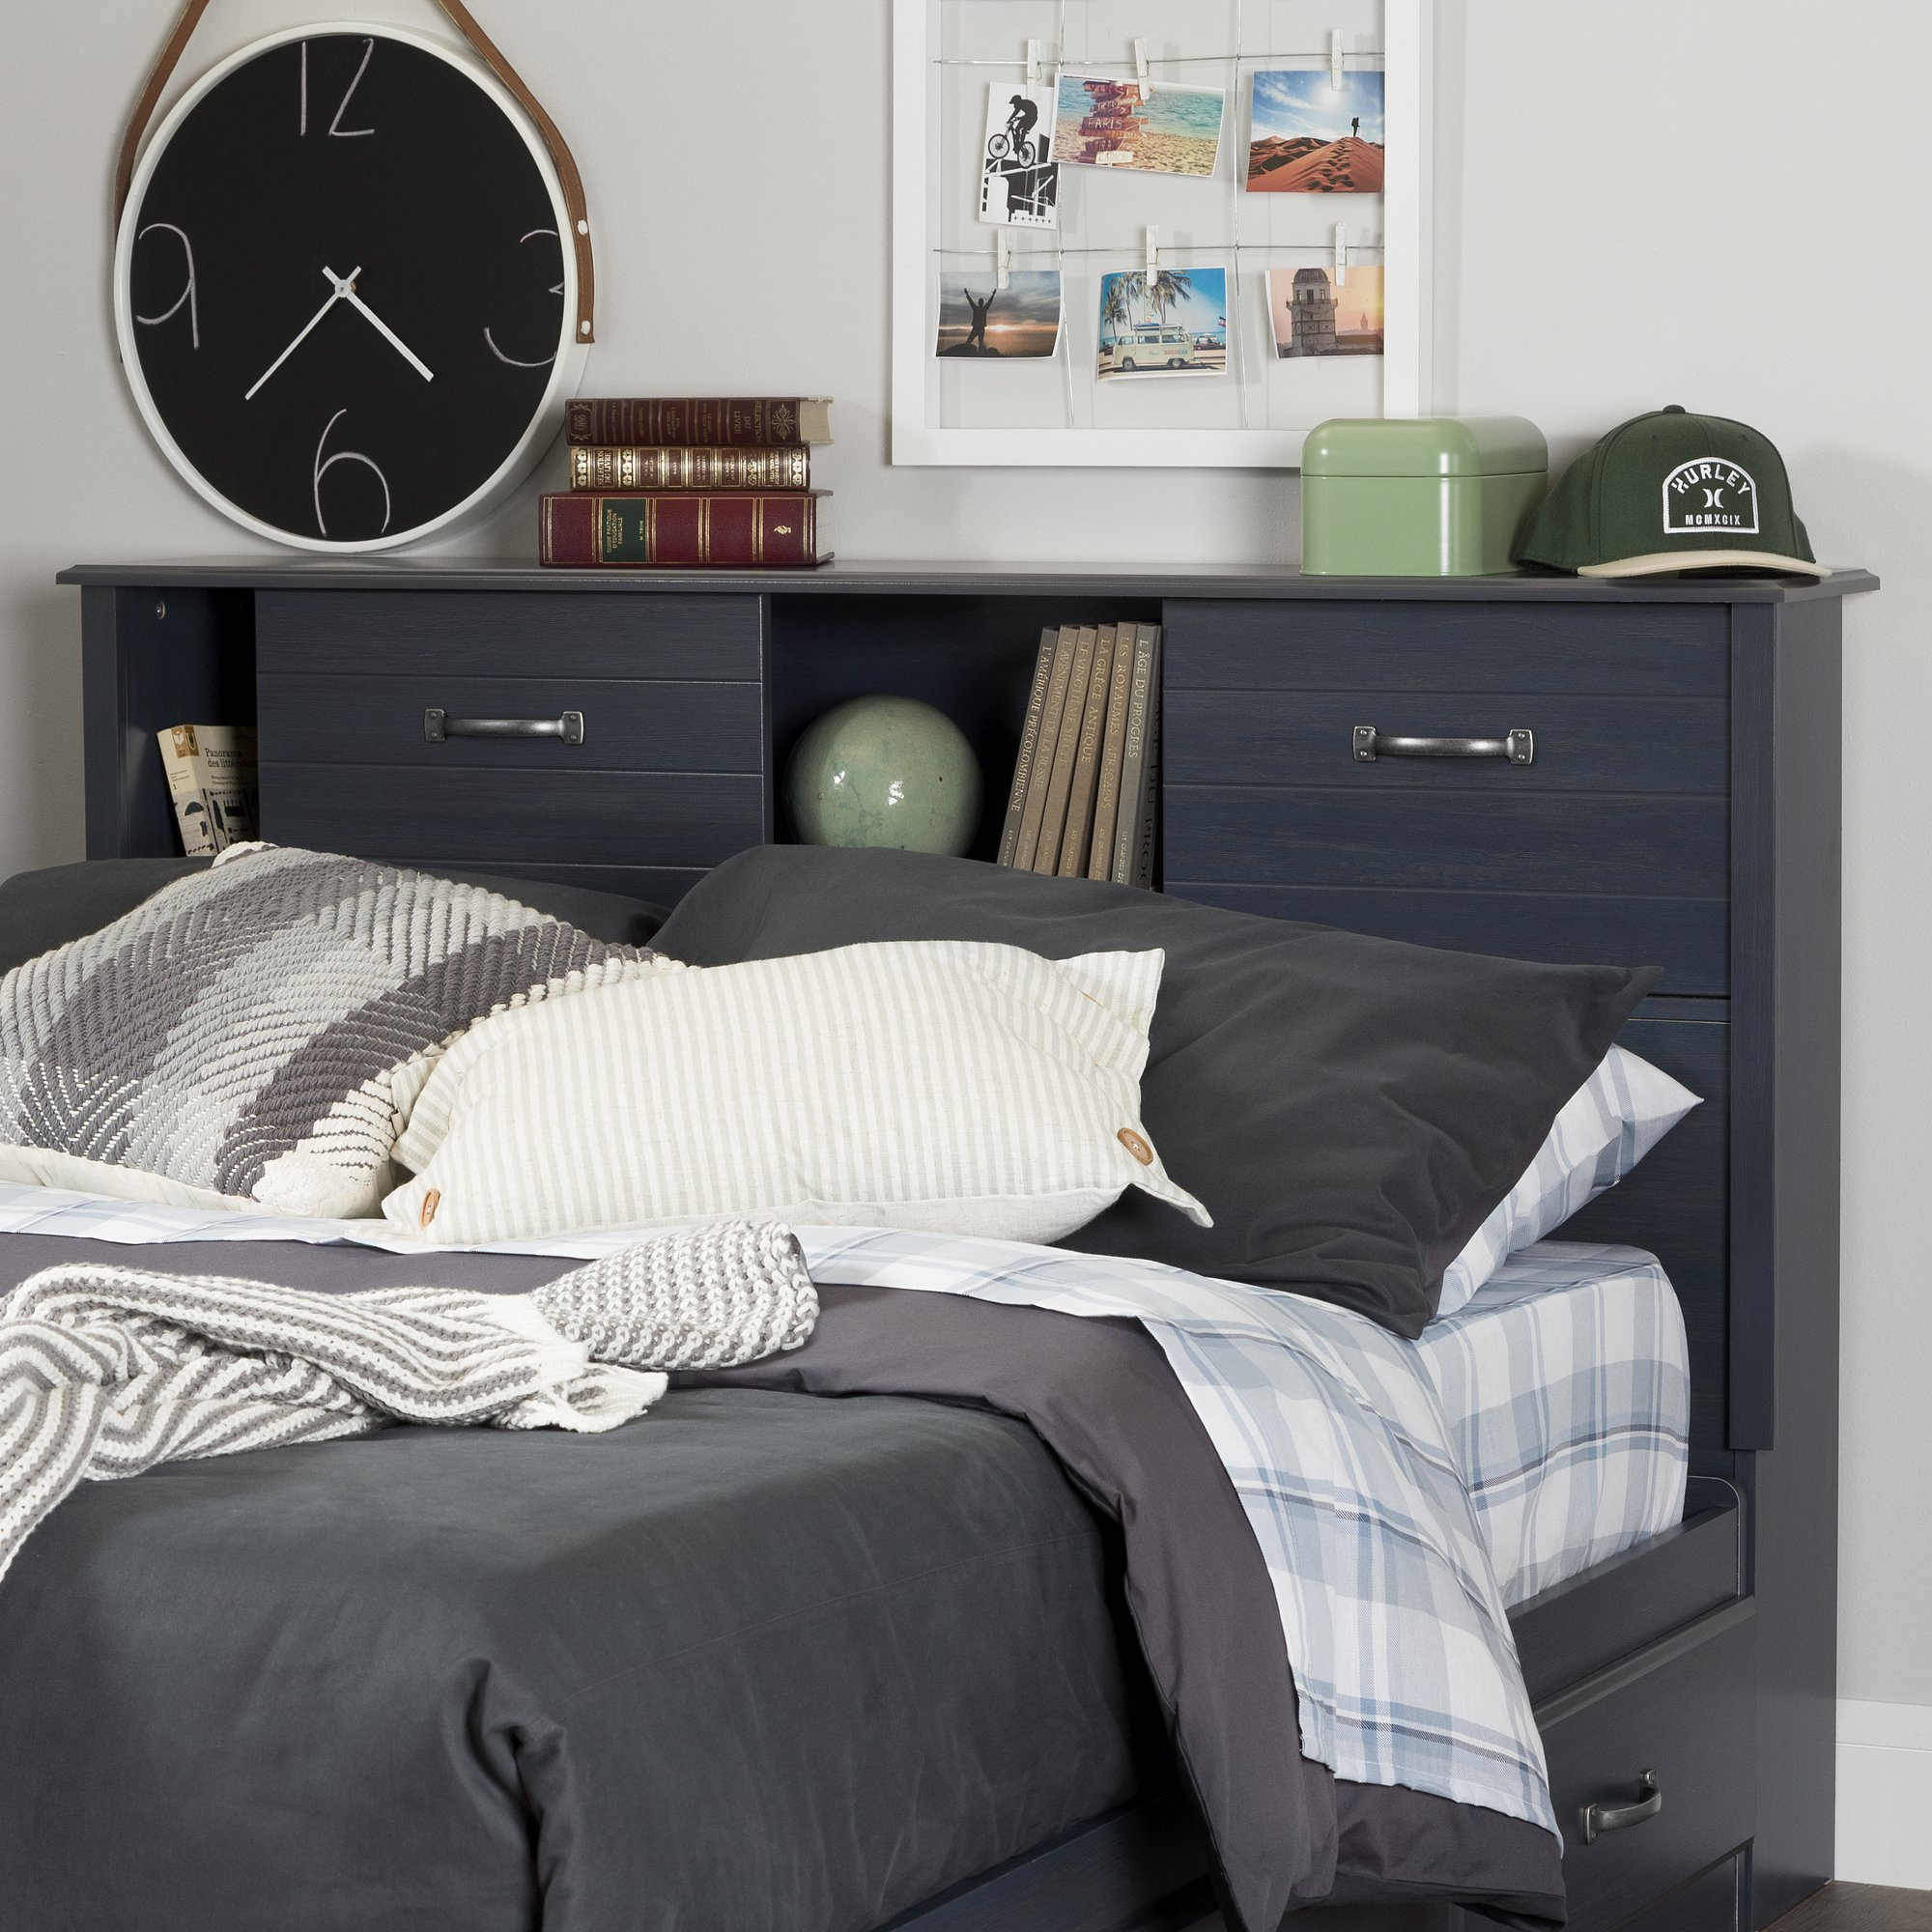 South Shore Ulysses 54'' Bookcase Headboard with Sliding Doors, Full, Blueberry